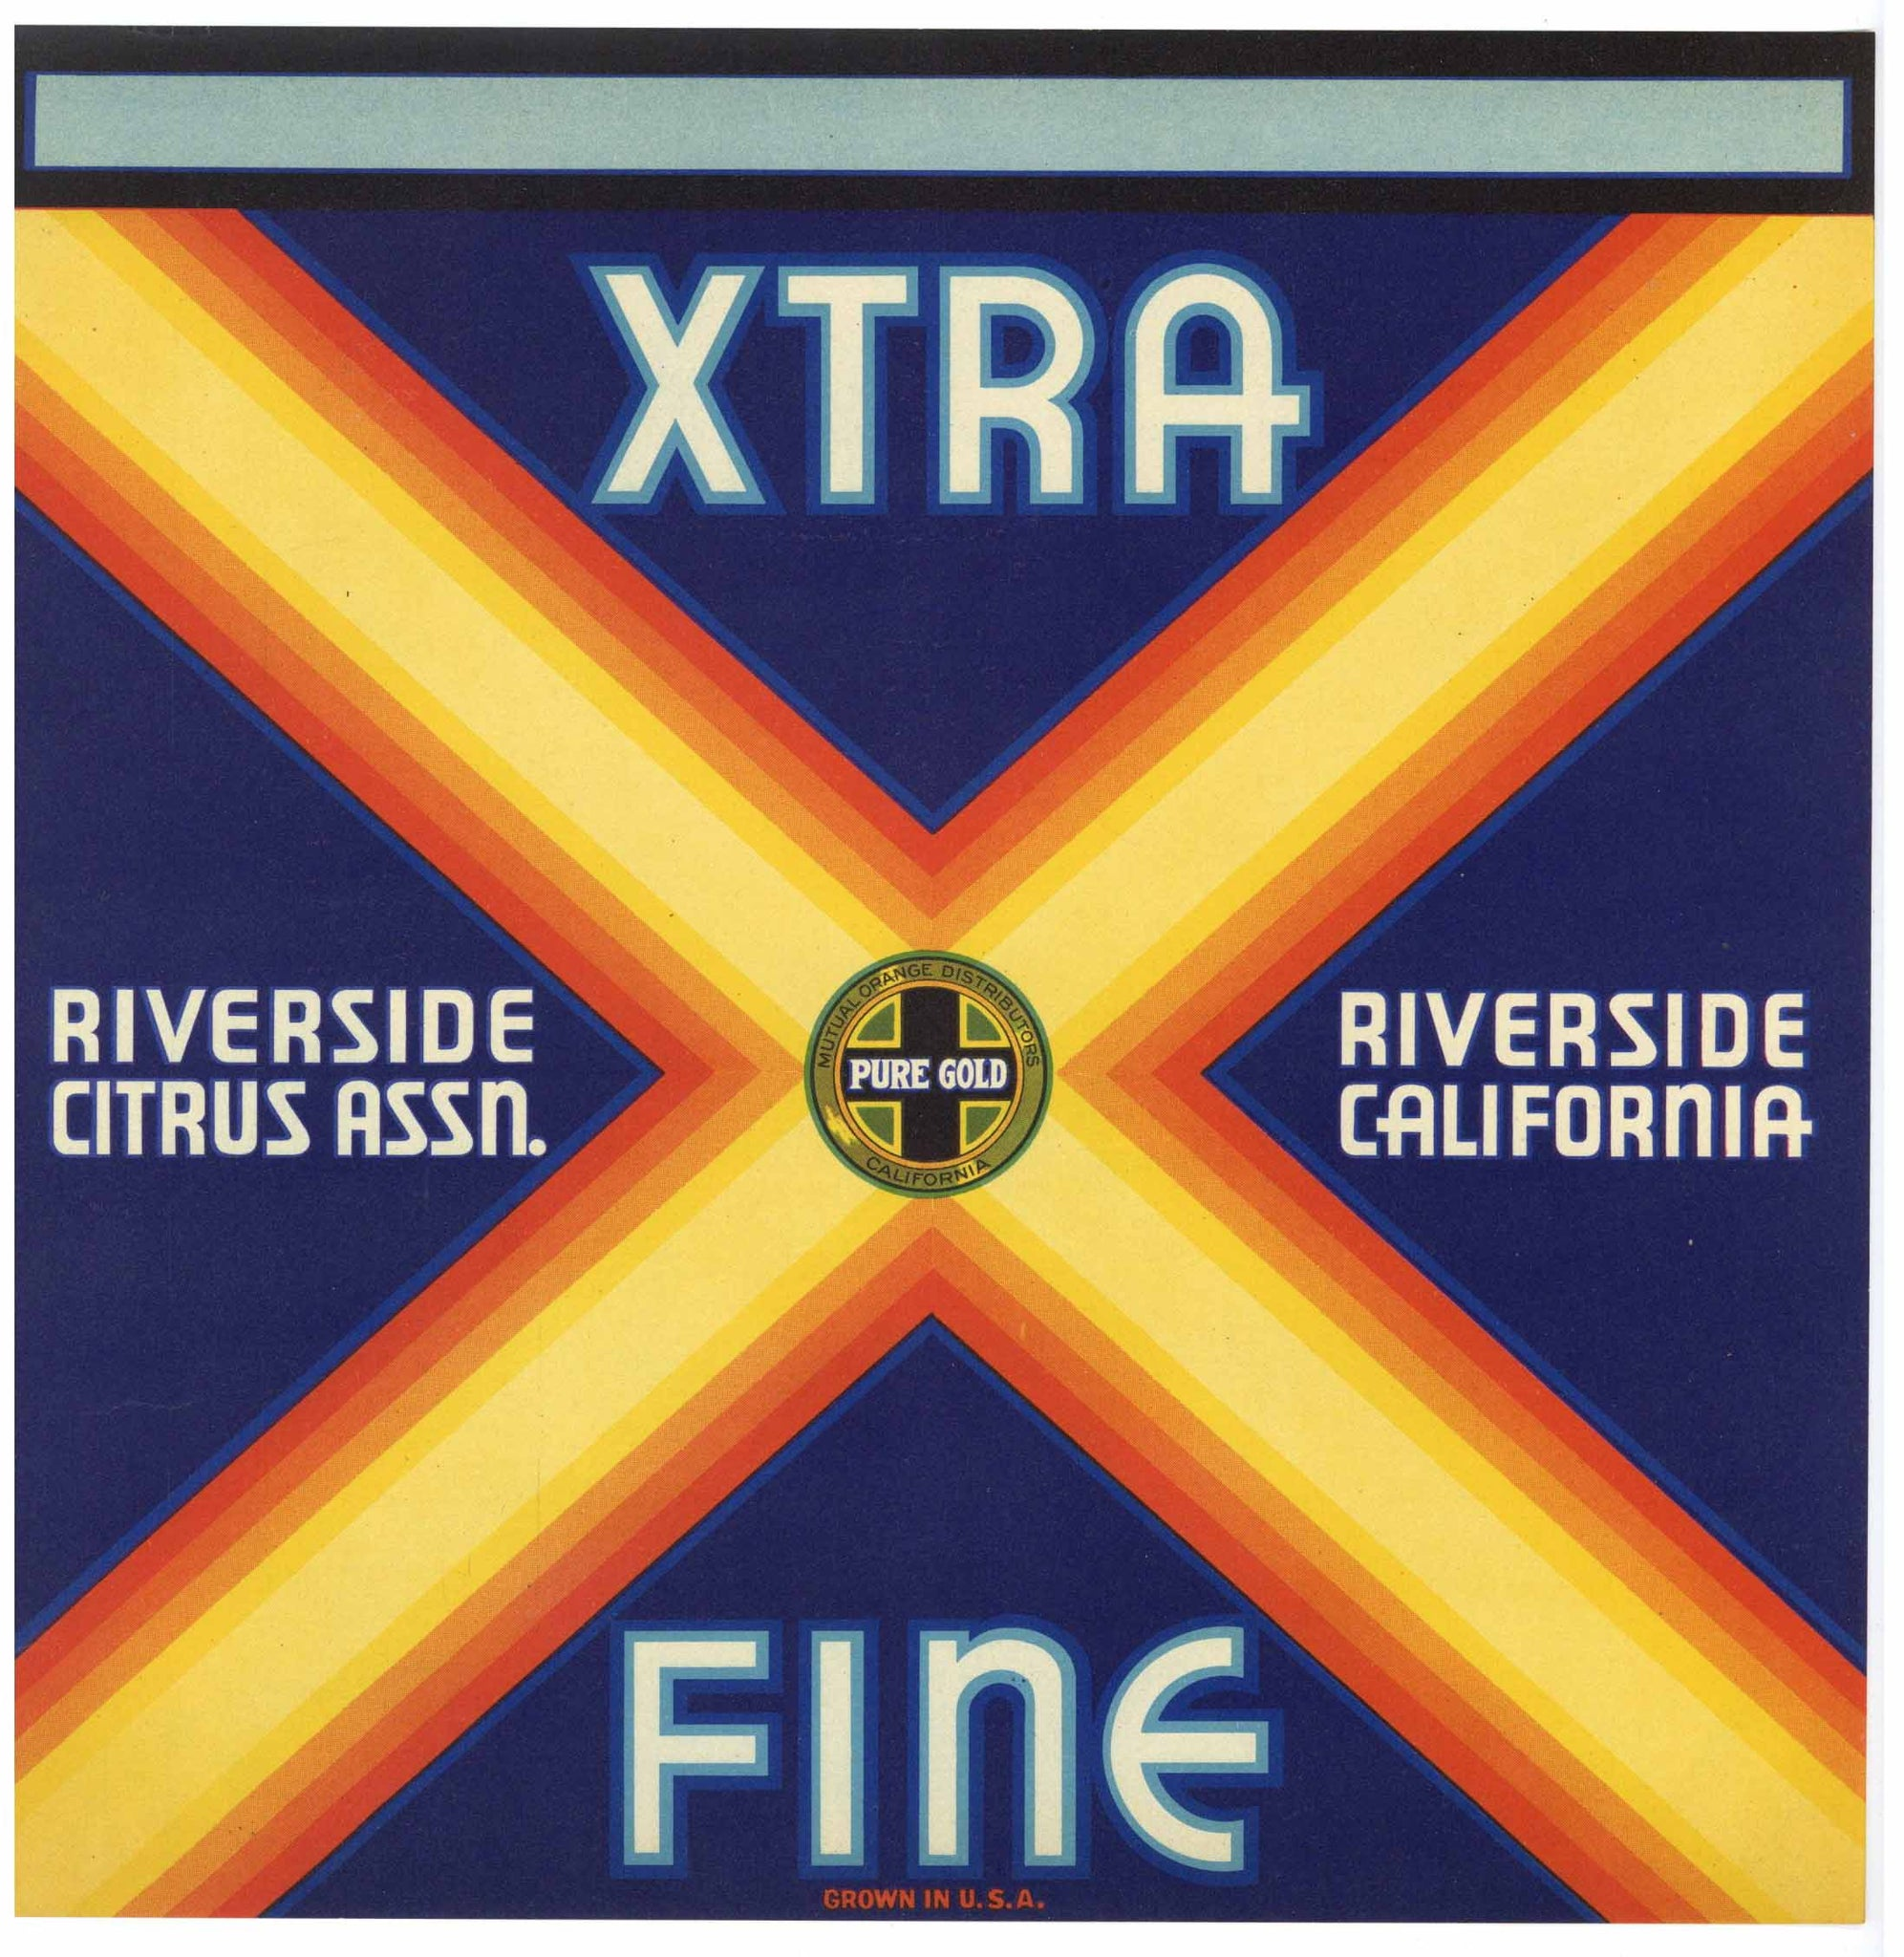 Xtra Brand Vintage Riverside California Orange Crate Label